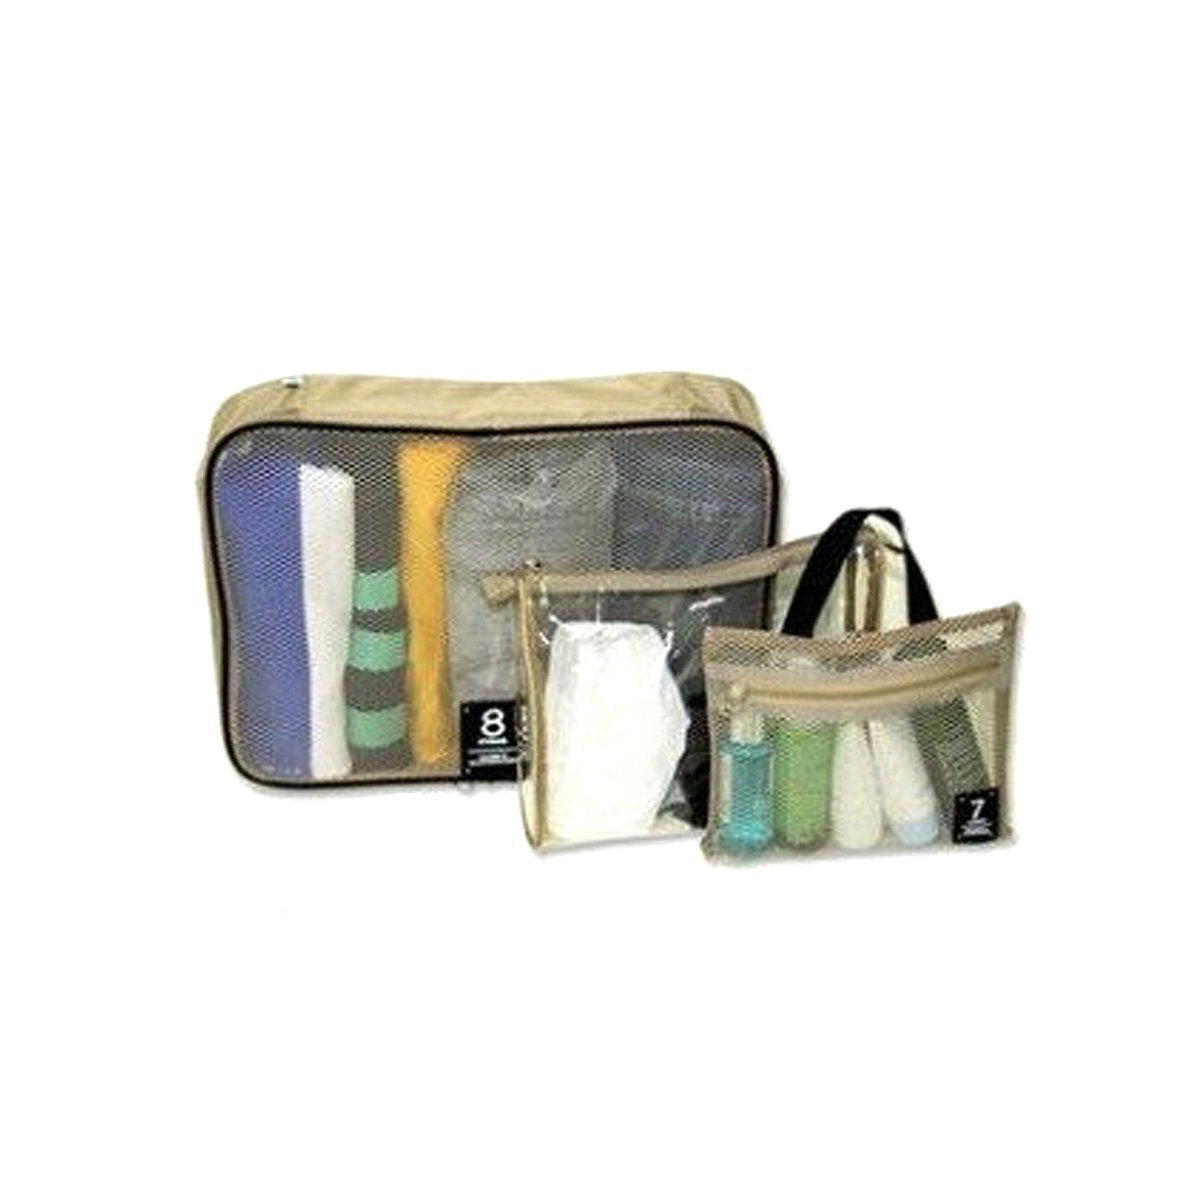 Nylon Mesh Three Piece Travel Bag Set